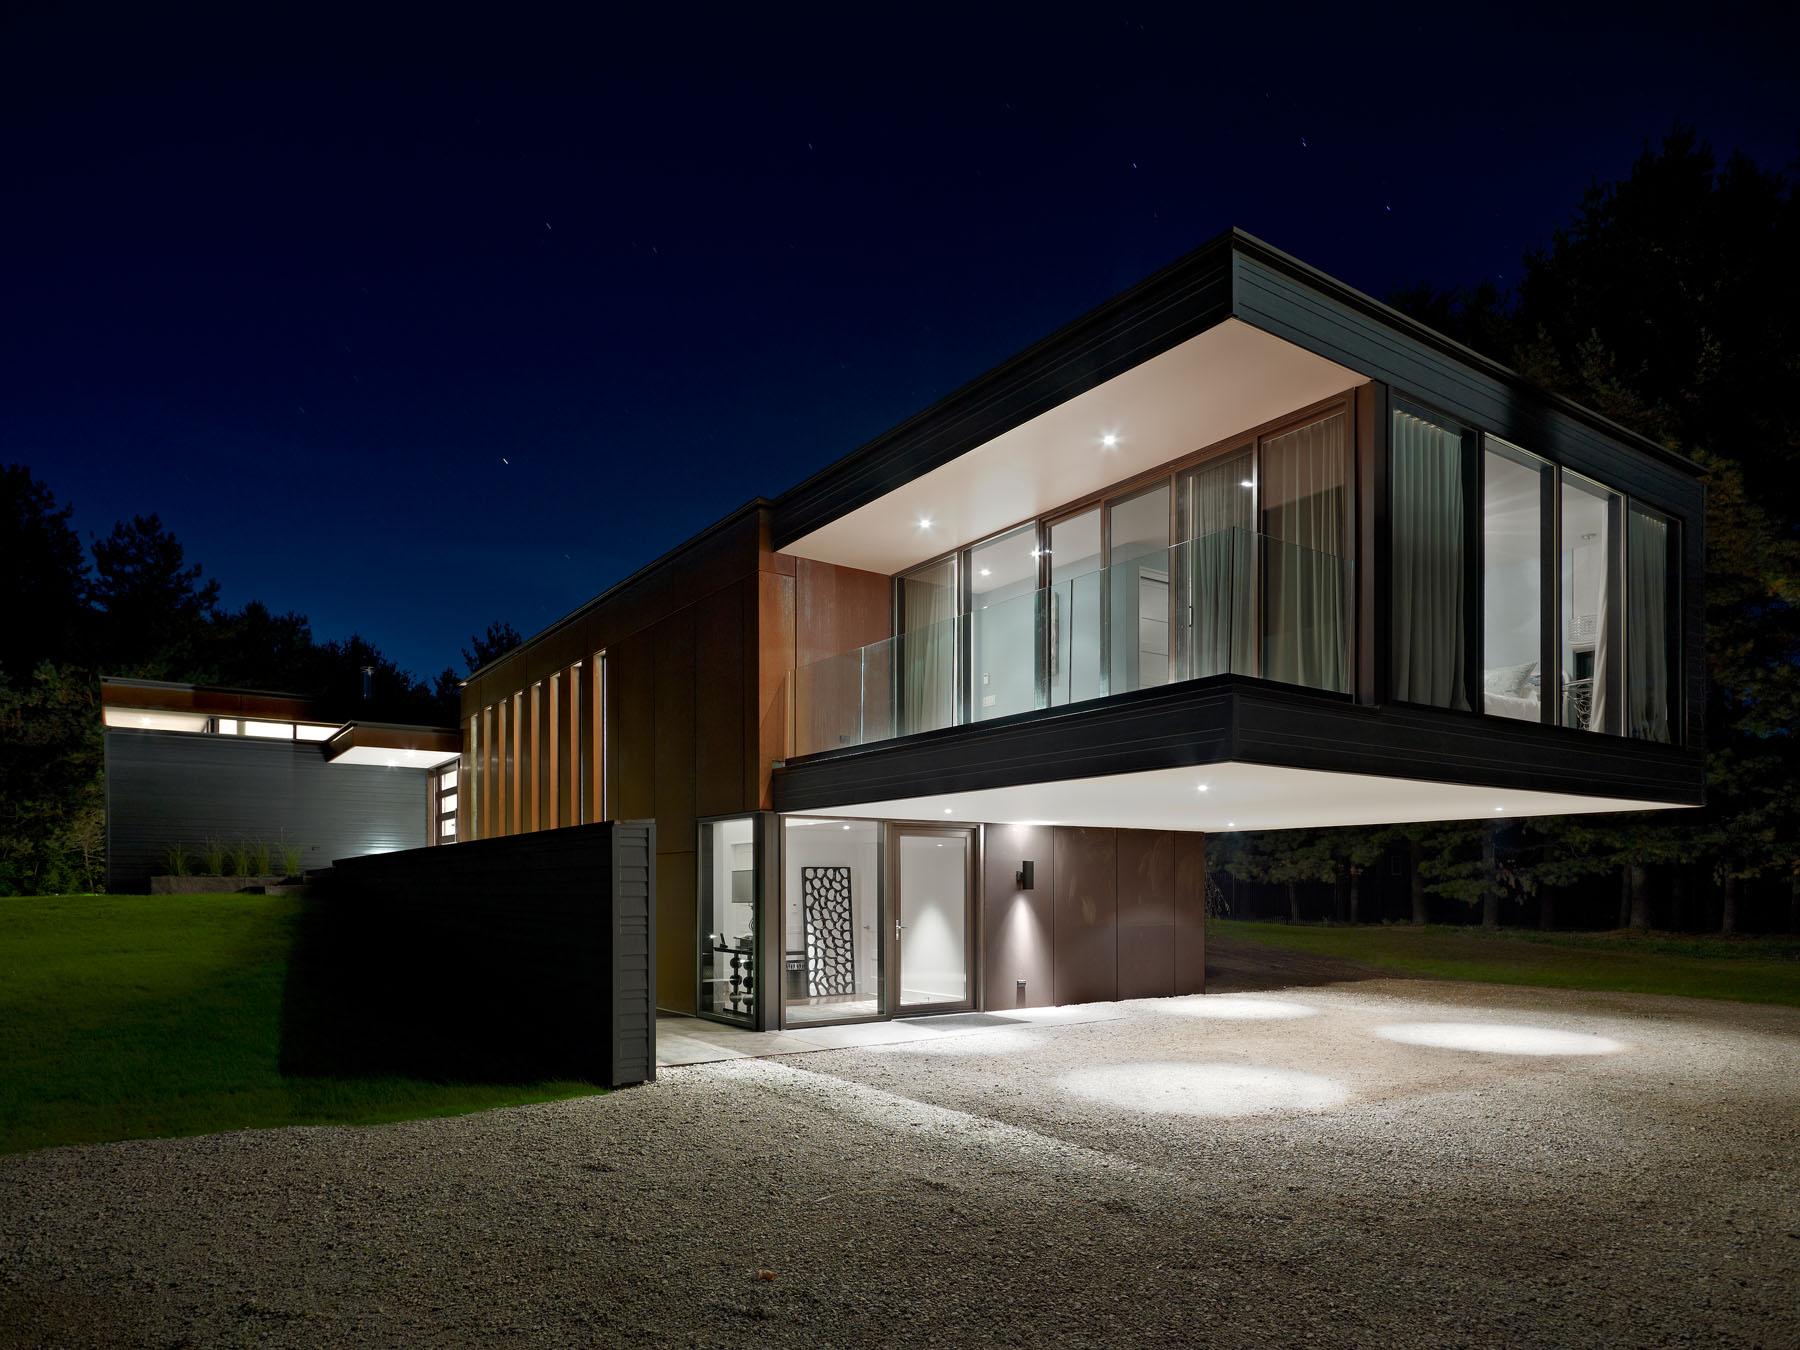 Contemporary Cantilever House Design By Paris Architects: Clearview Residence By Altius Architecture